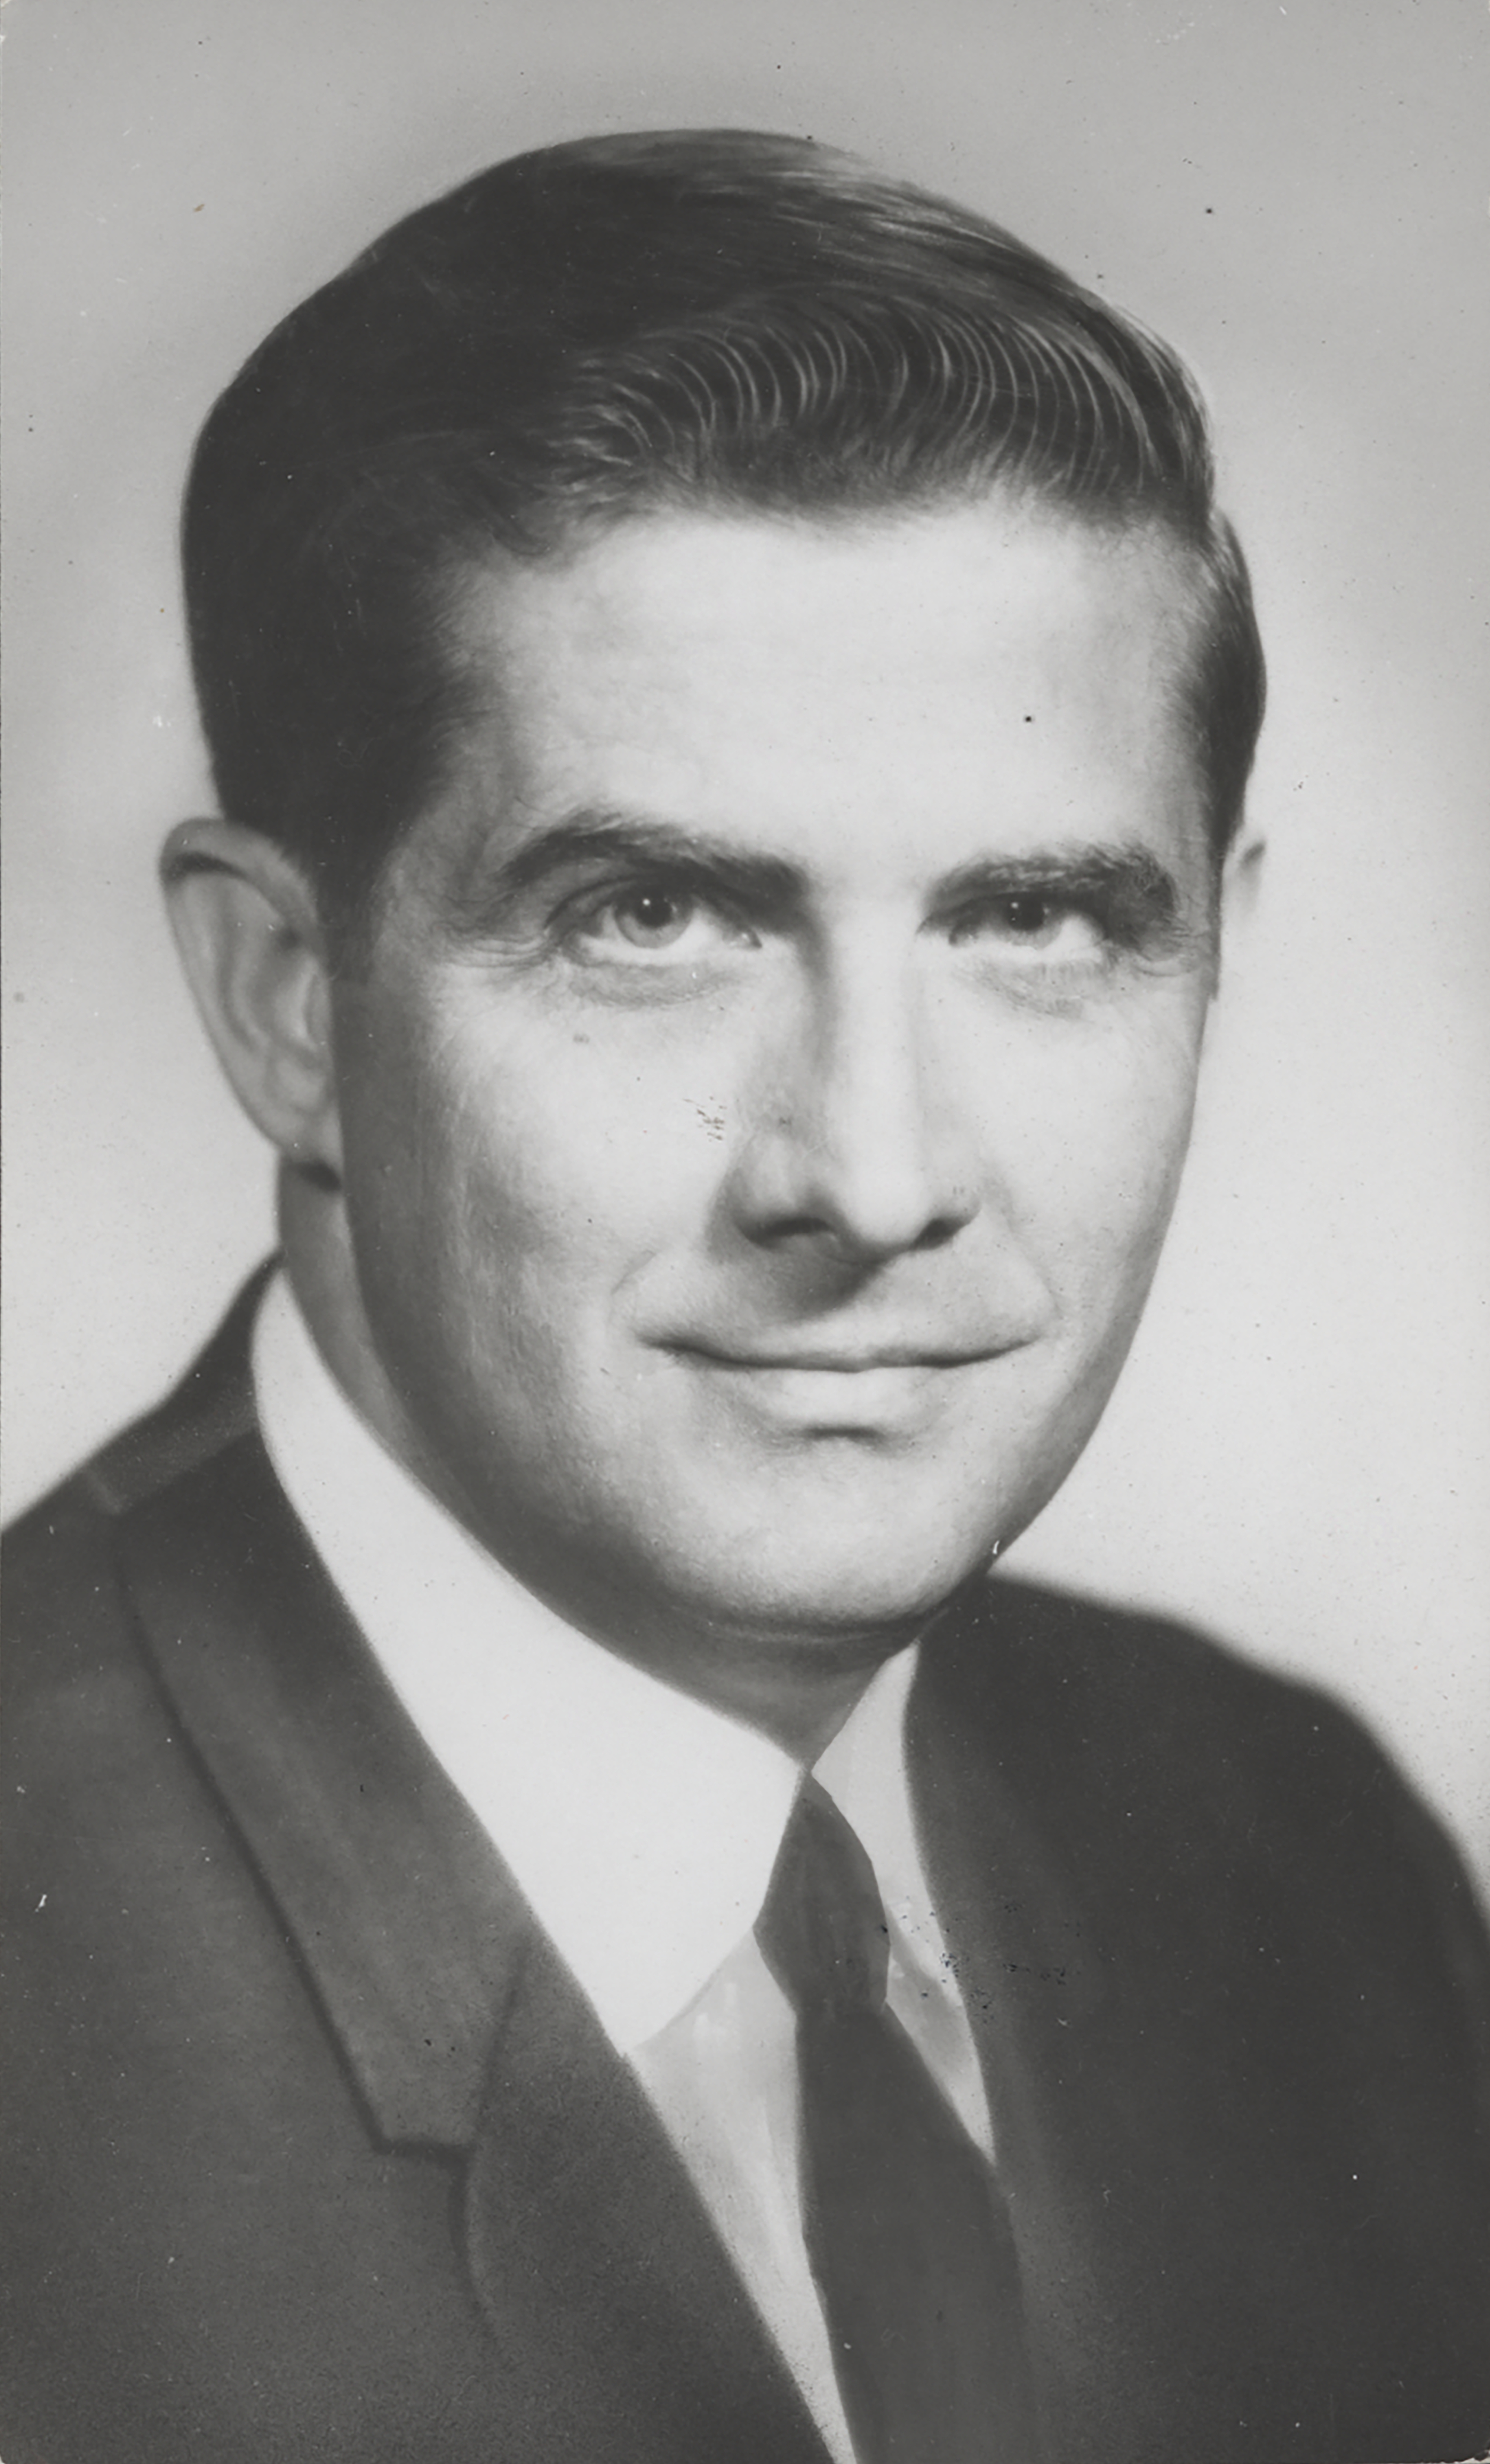 Lawrence J Hogan 93rd Congressional Pictorial Directory.jpg